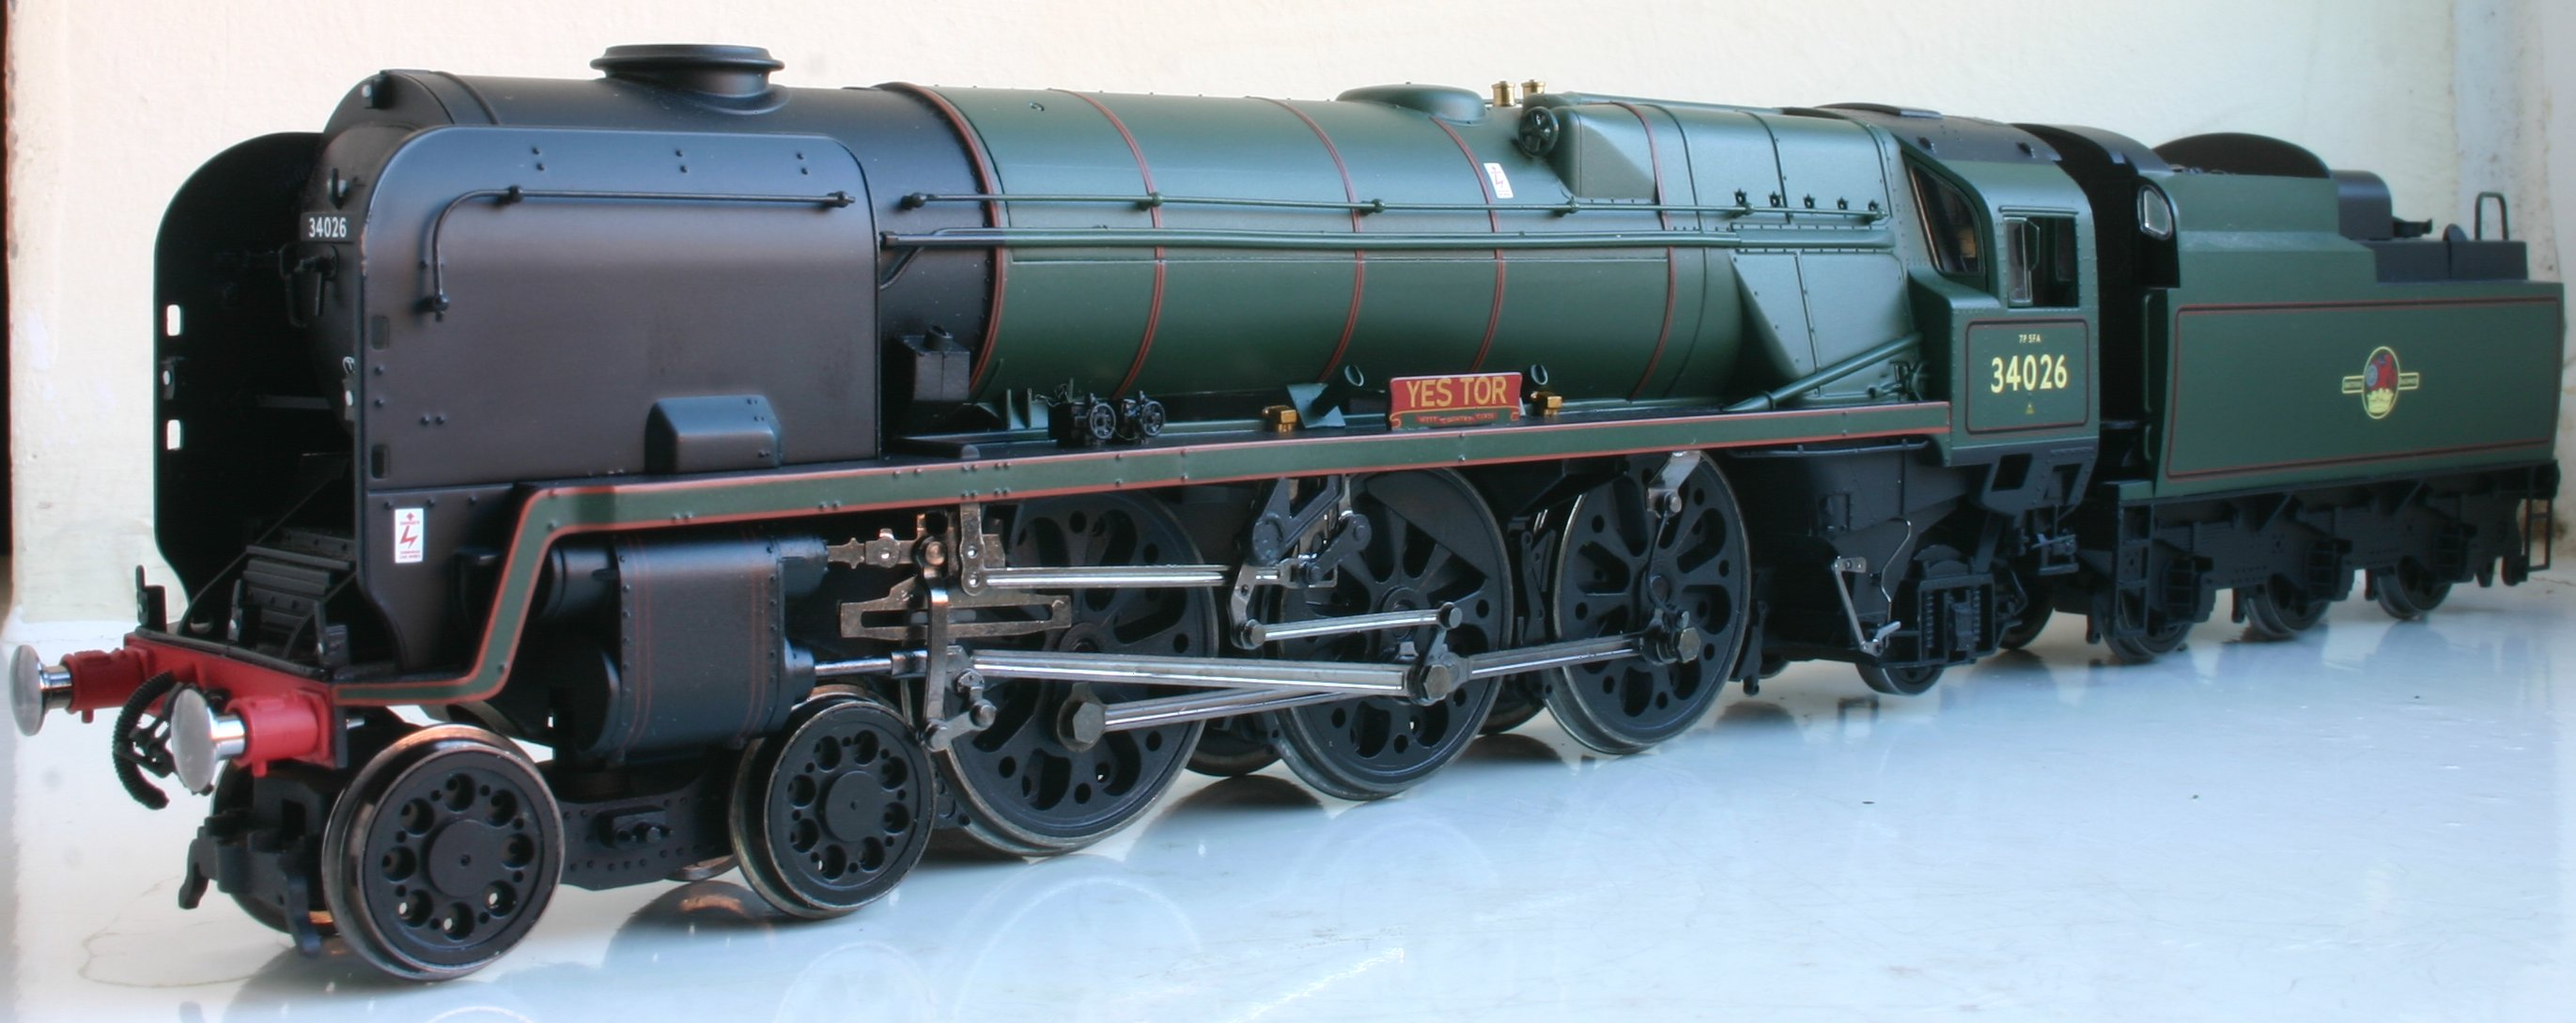 hornby rebuilt west country   battle of britain class review loco yard Cylinder Aircraft Engine Overhaul car engine overhaul guide